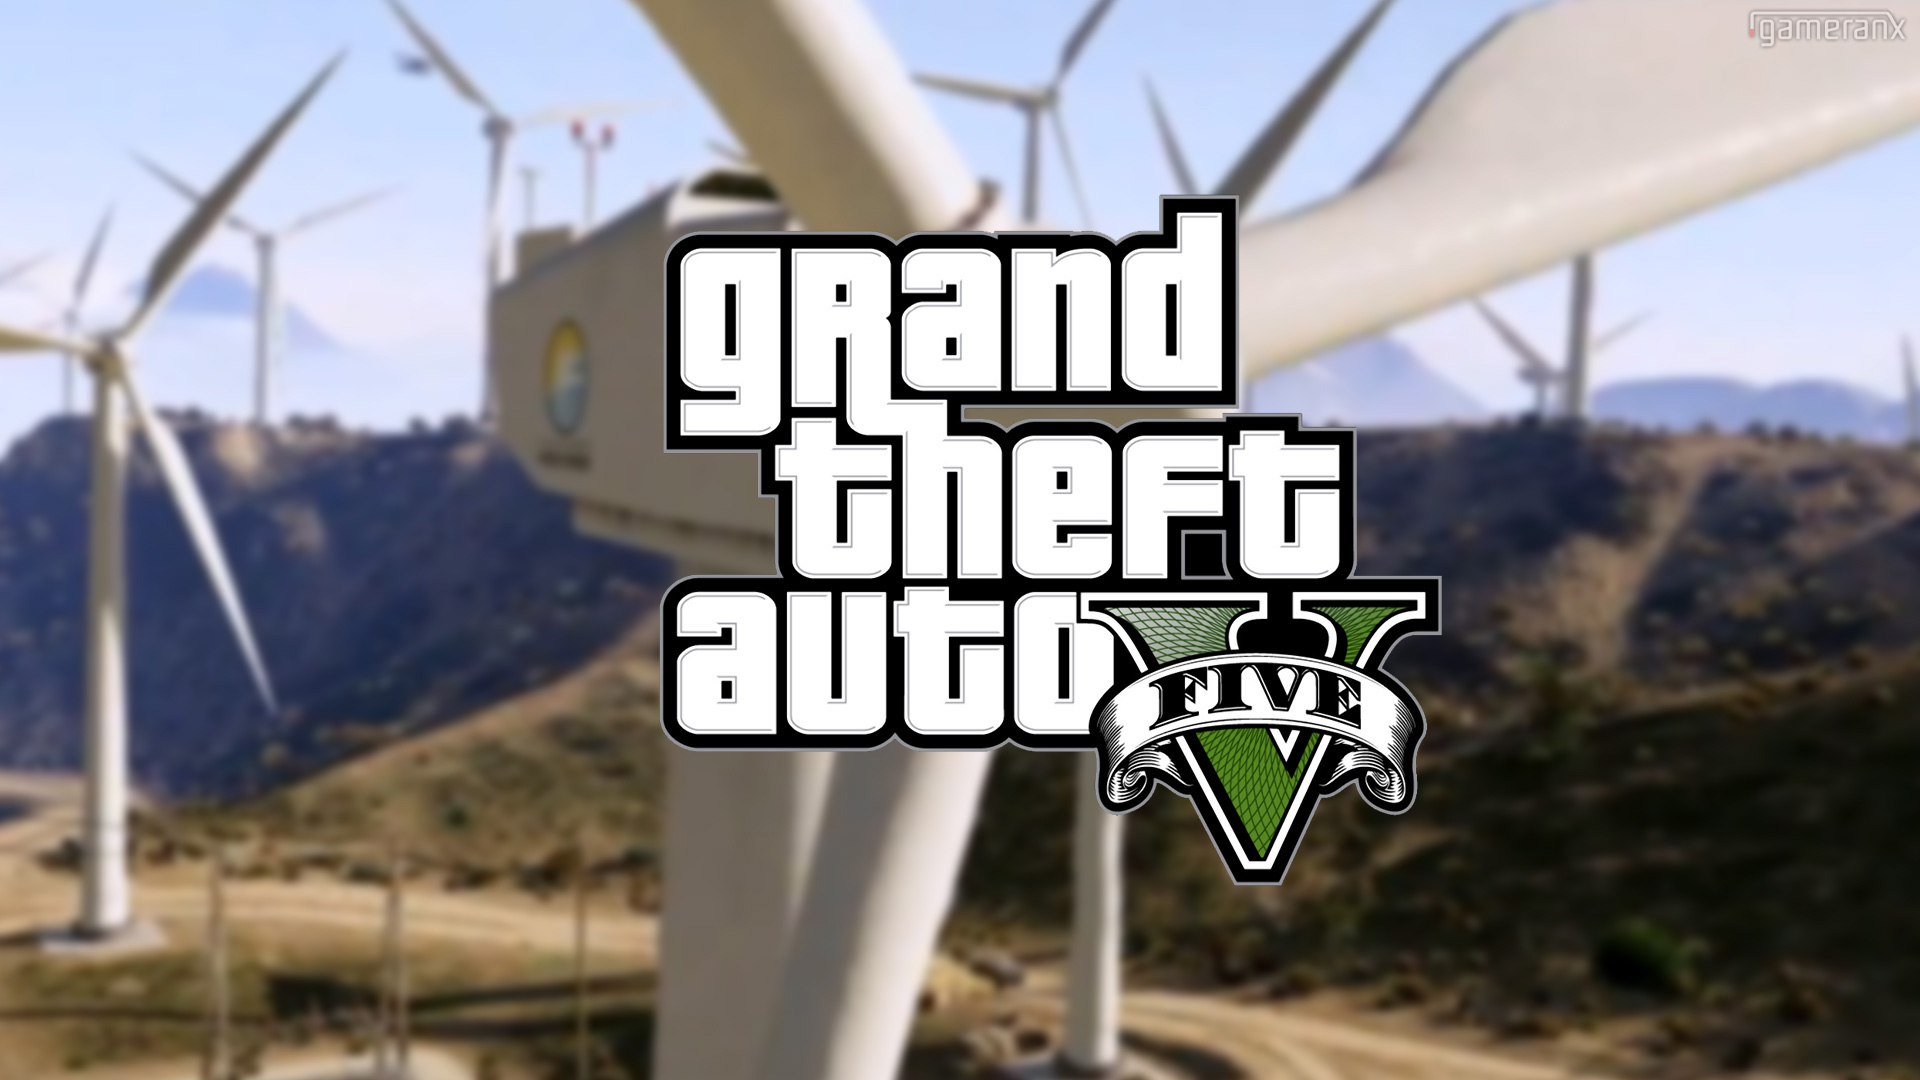 gameranxcomimageswallpapersgta 5gta 5 wallpaper hd 2 1080pjpg 1920x1080